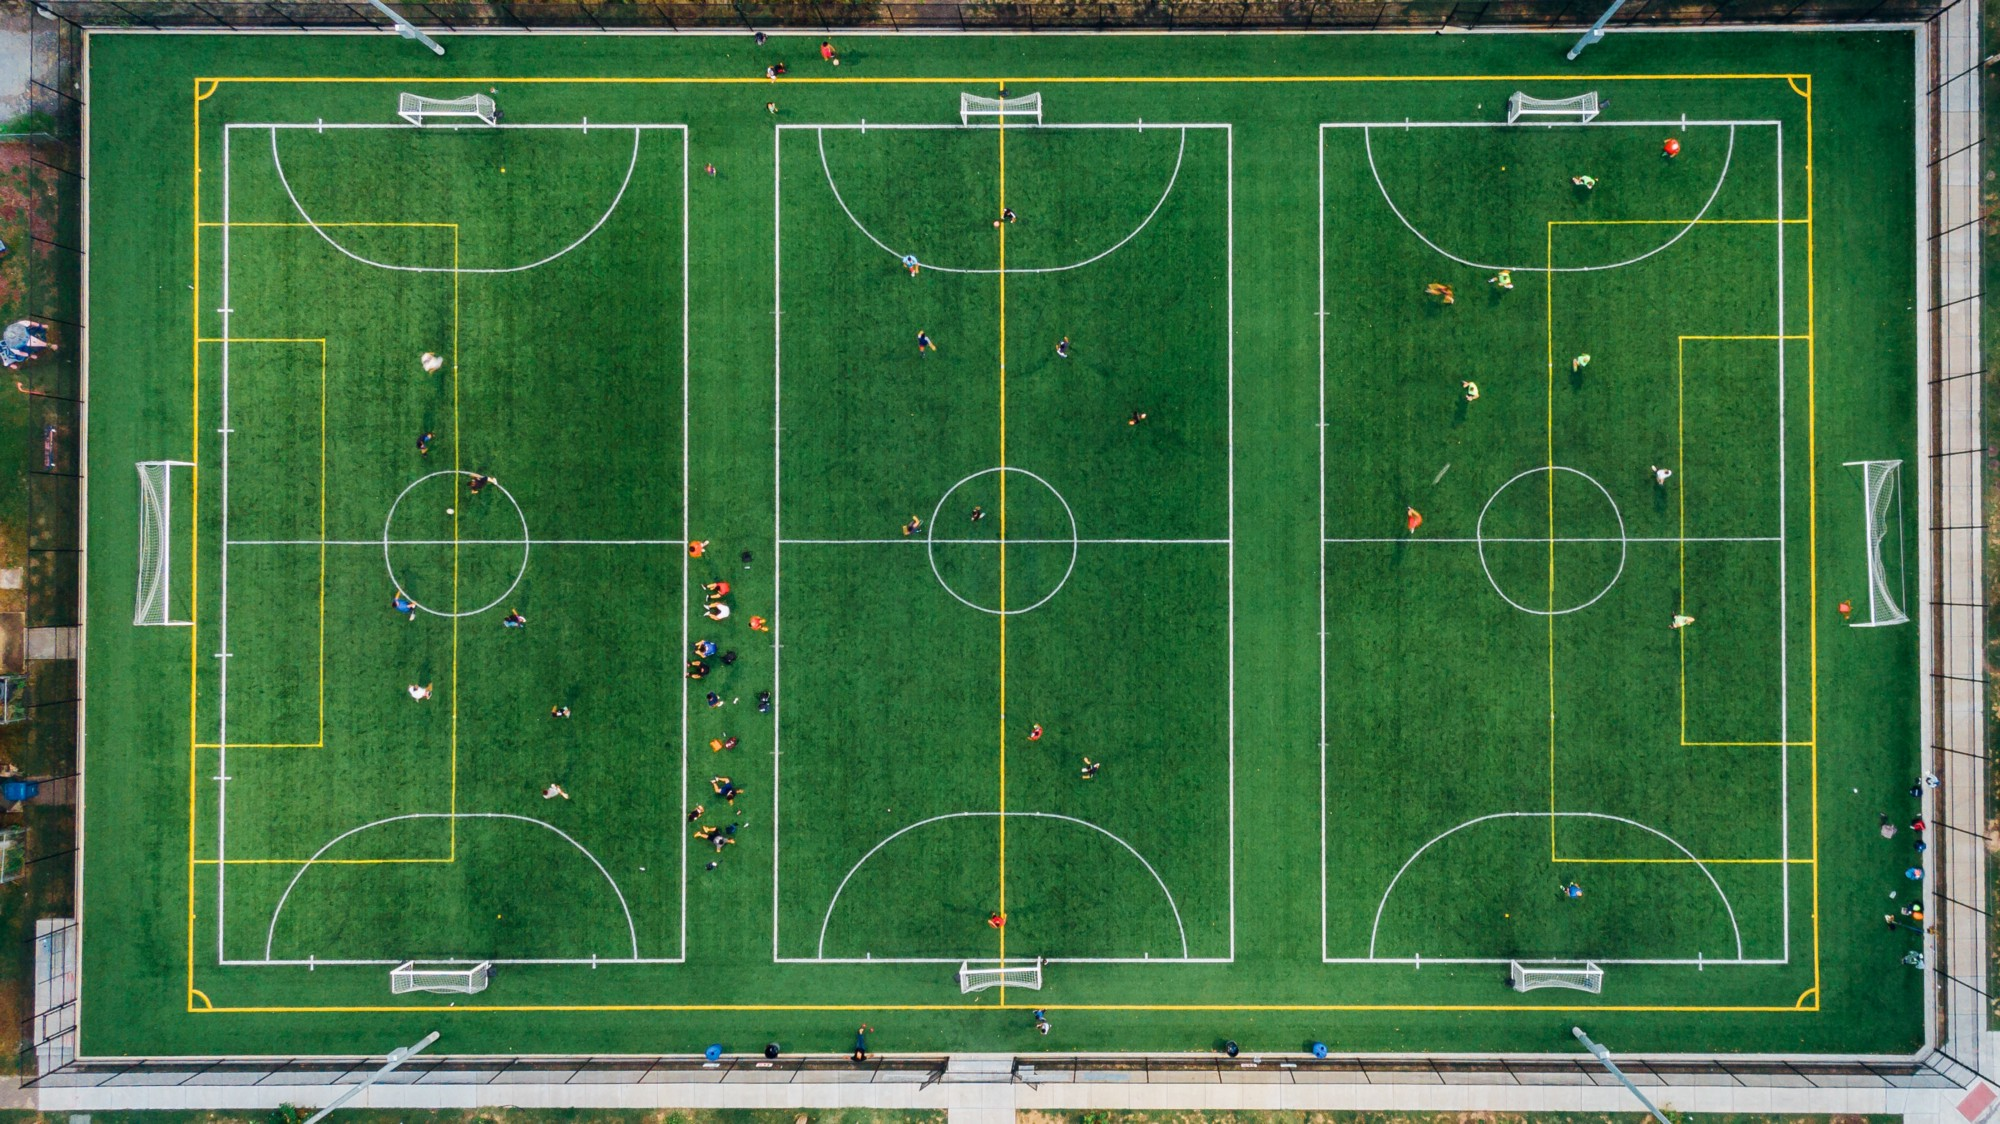 An aerial view of three sports fields.